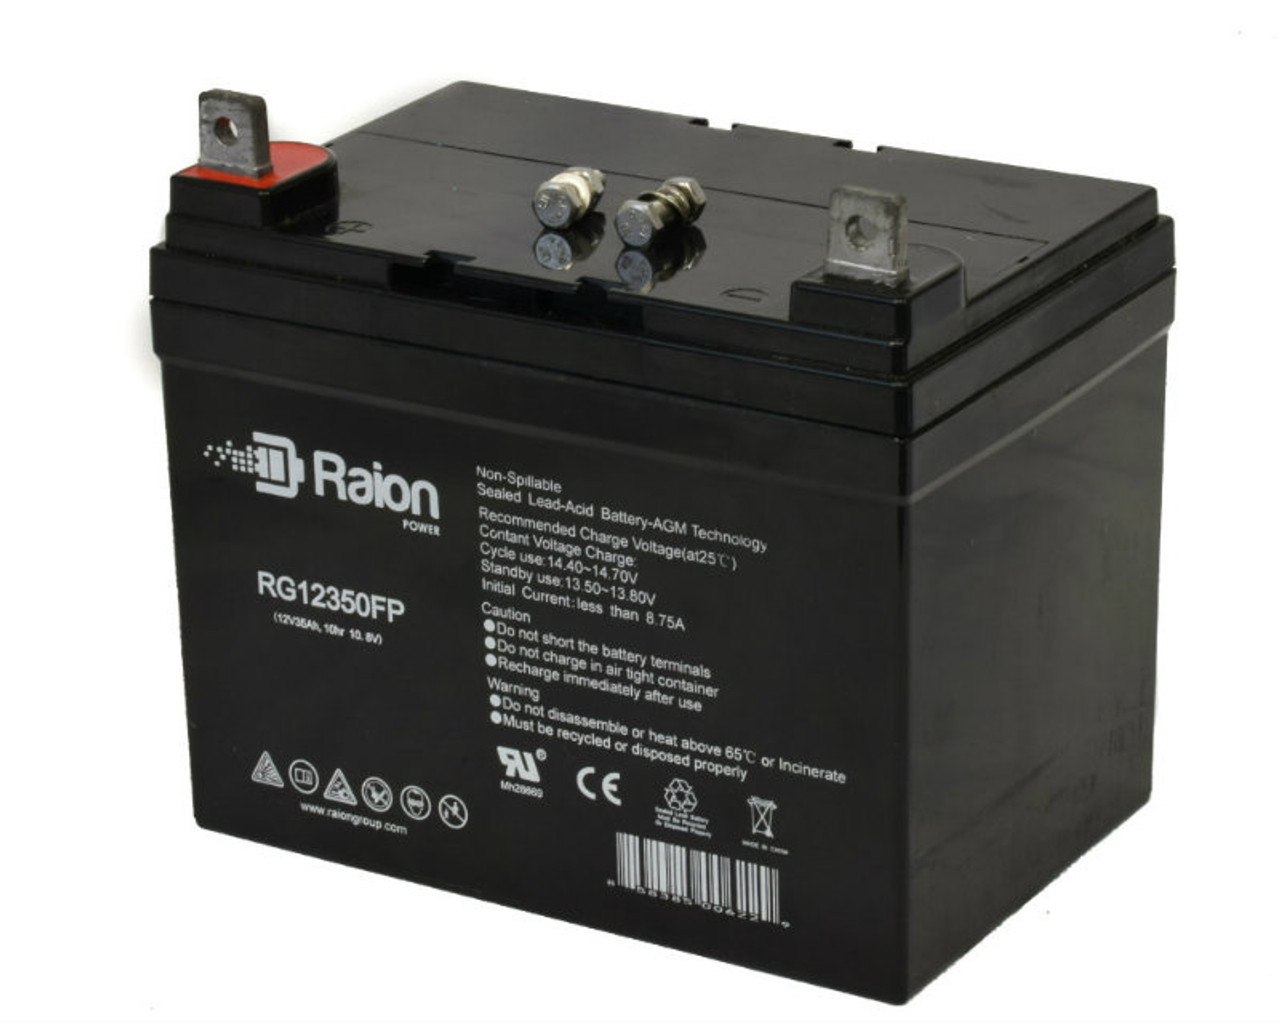 Raion Power RG12350FP Replacement Wheelchair Battery For Orthofab/Lifestyles 755FS (1 Pack)